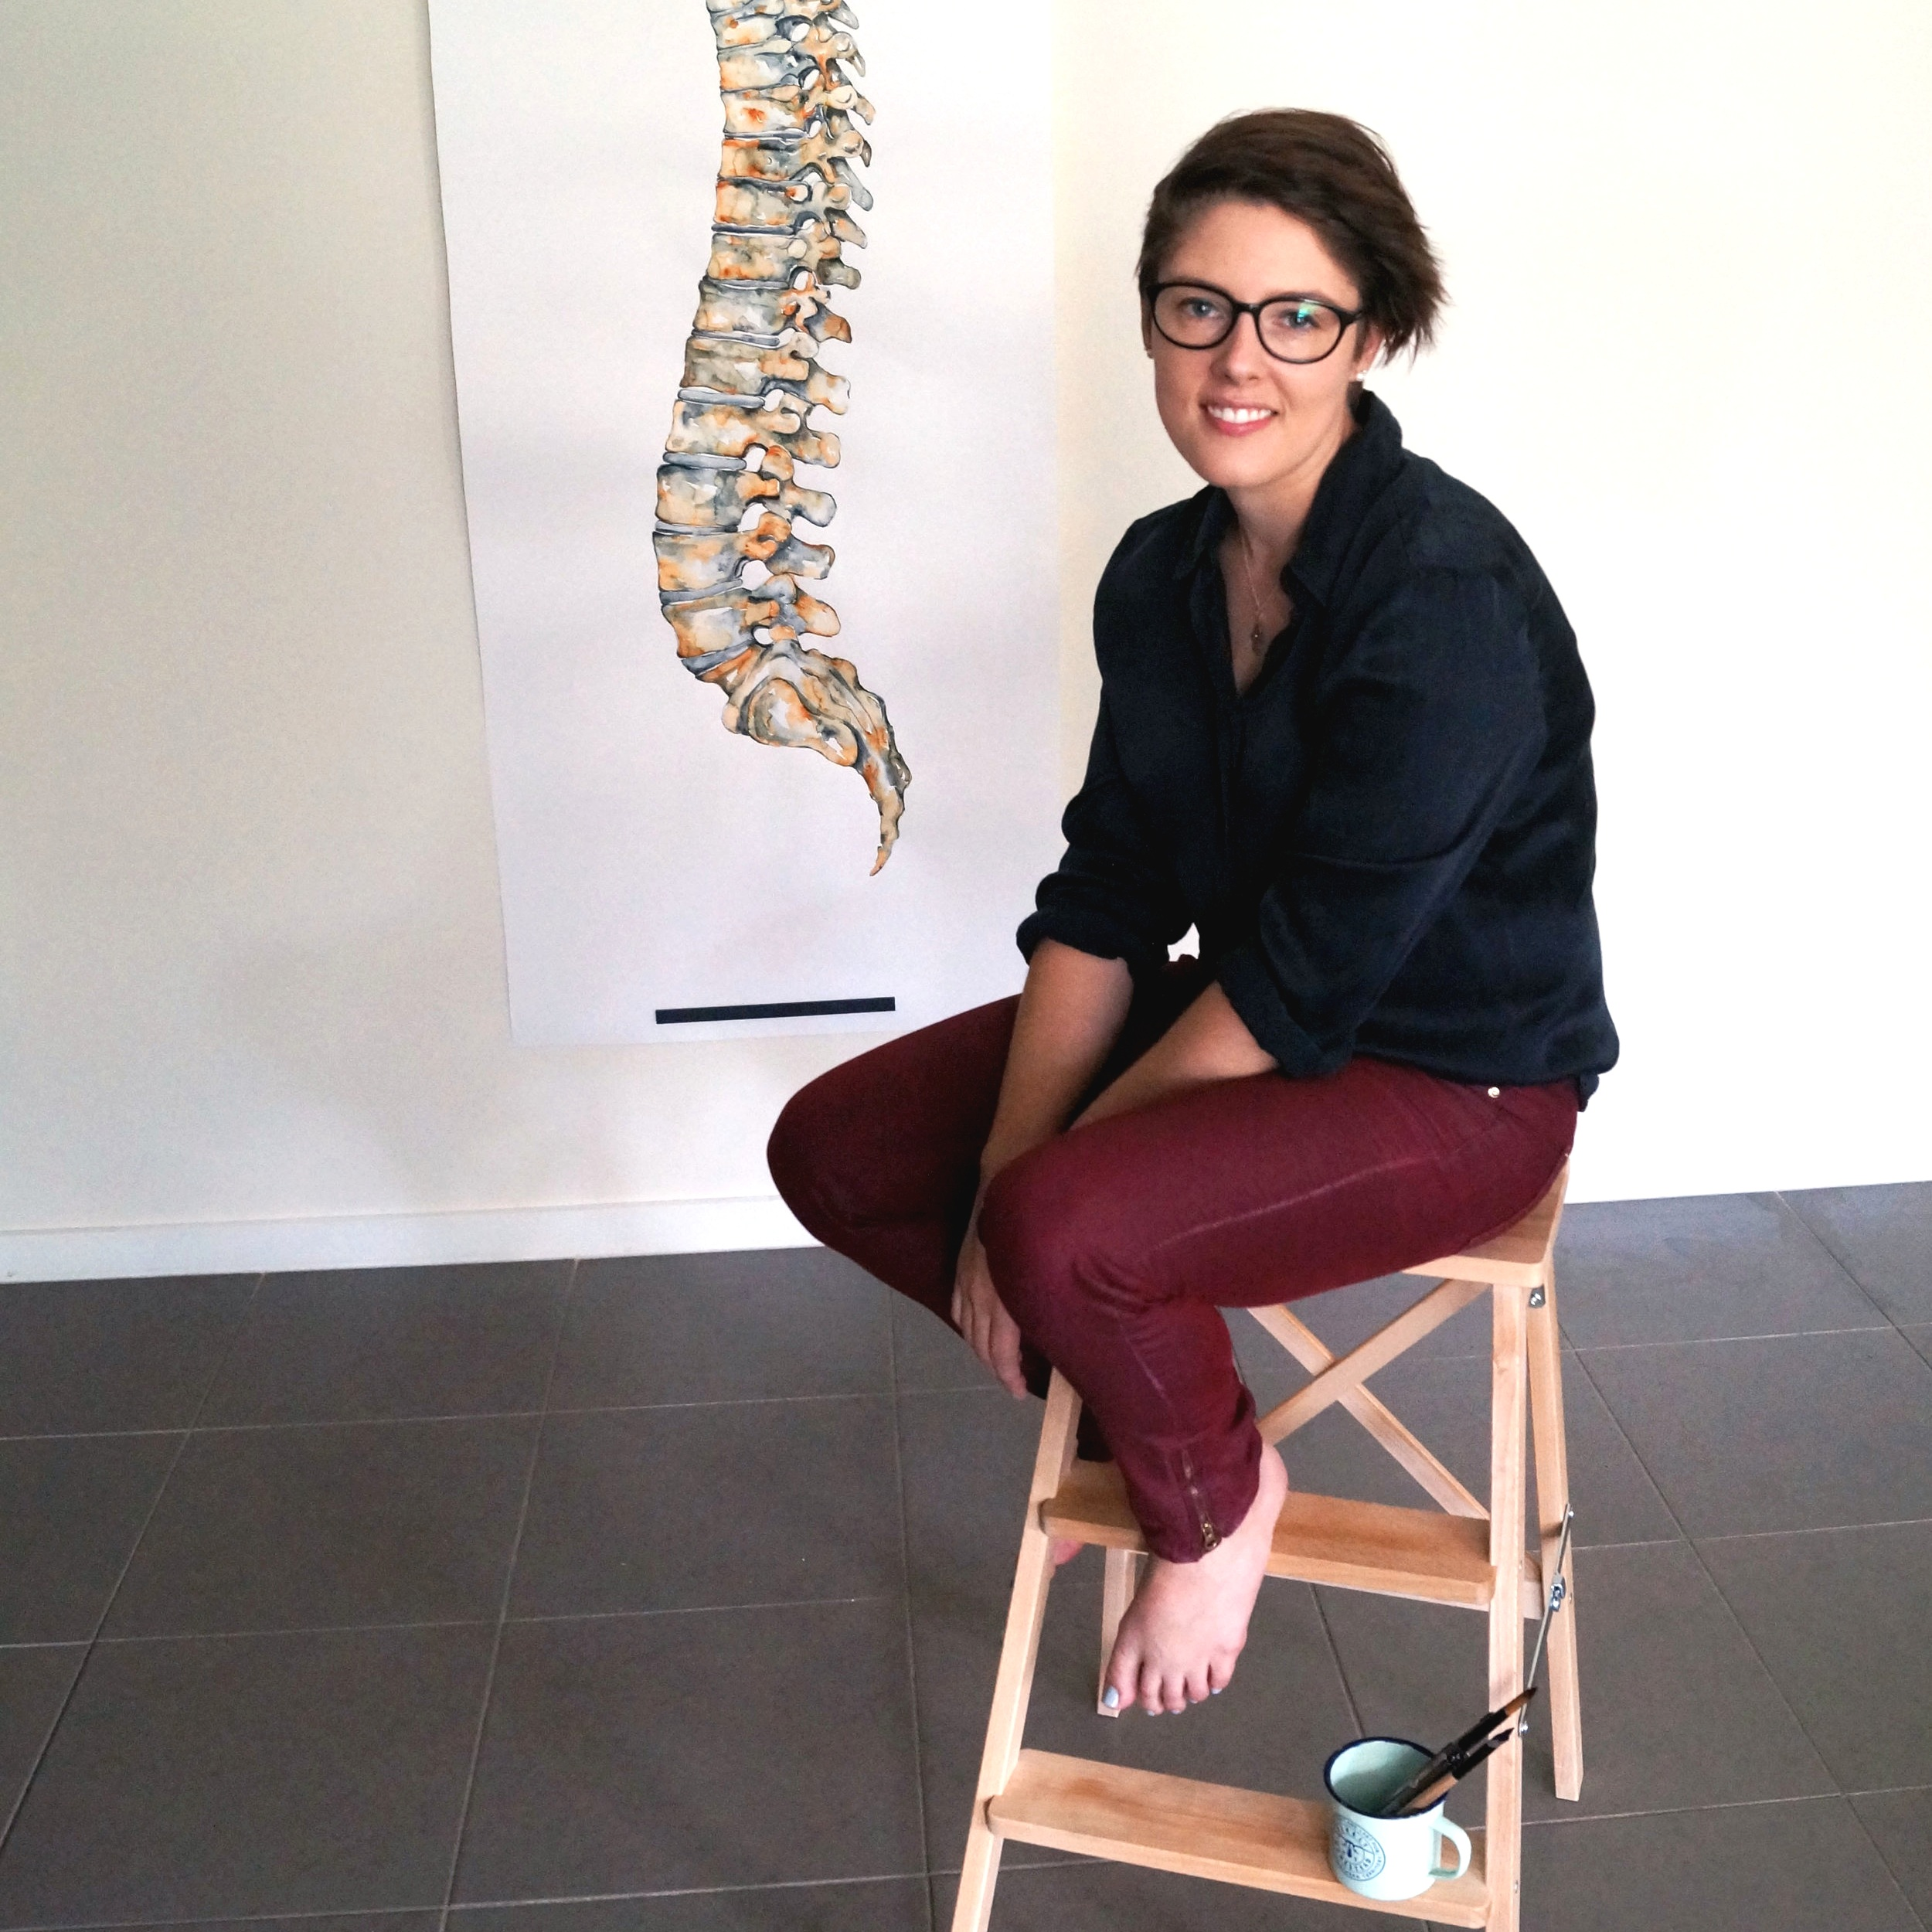 Meet Lauren Squires - Doctor. Artist. Trailblazer.